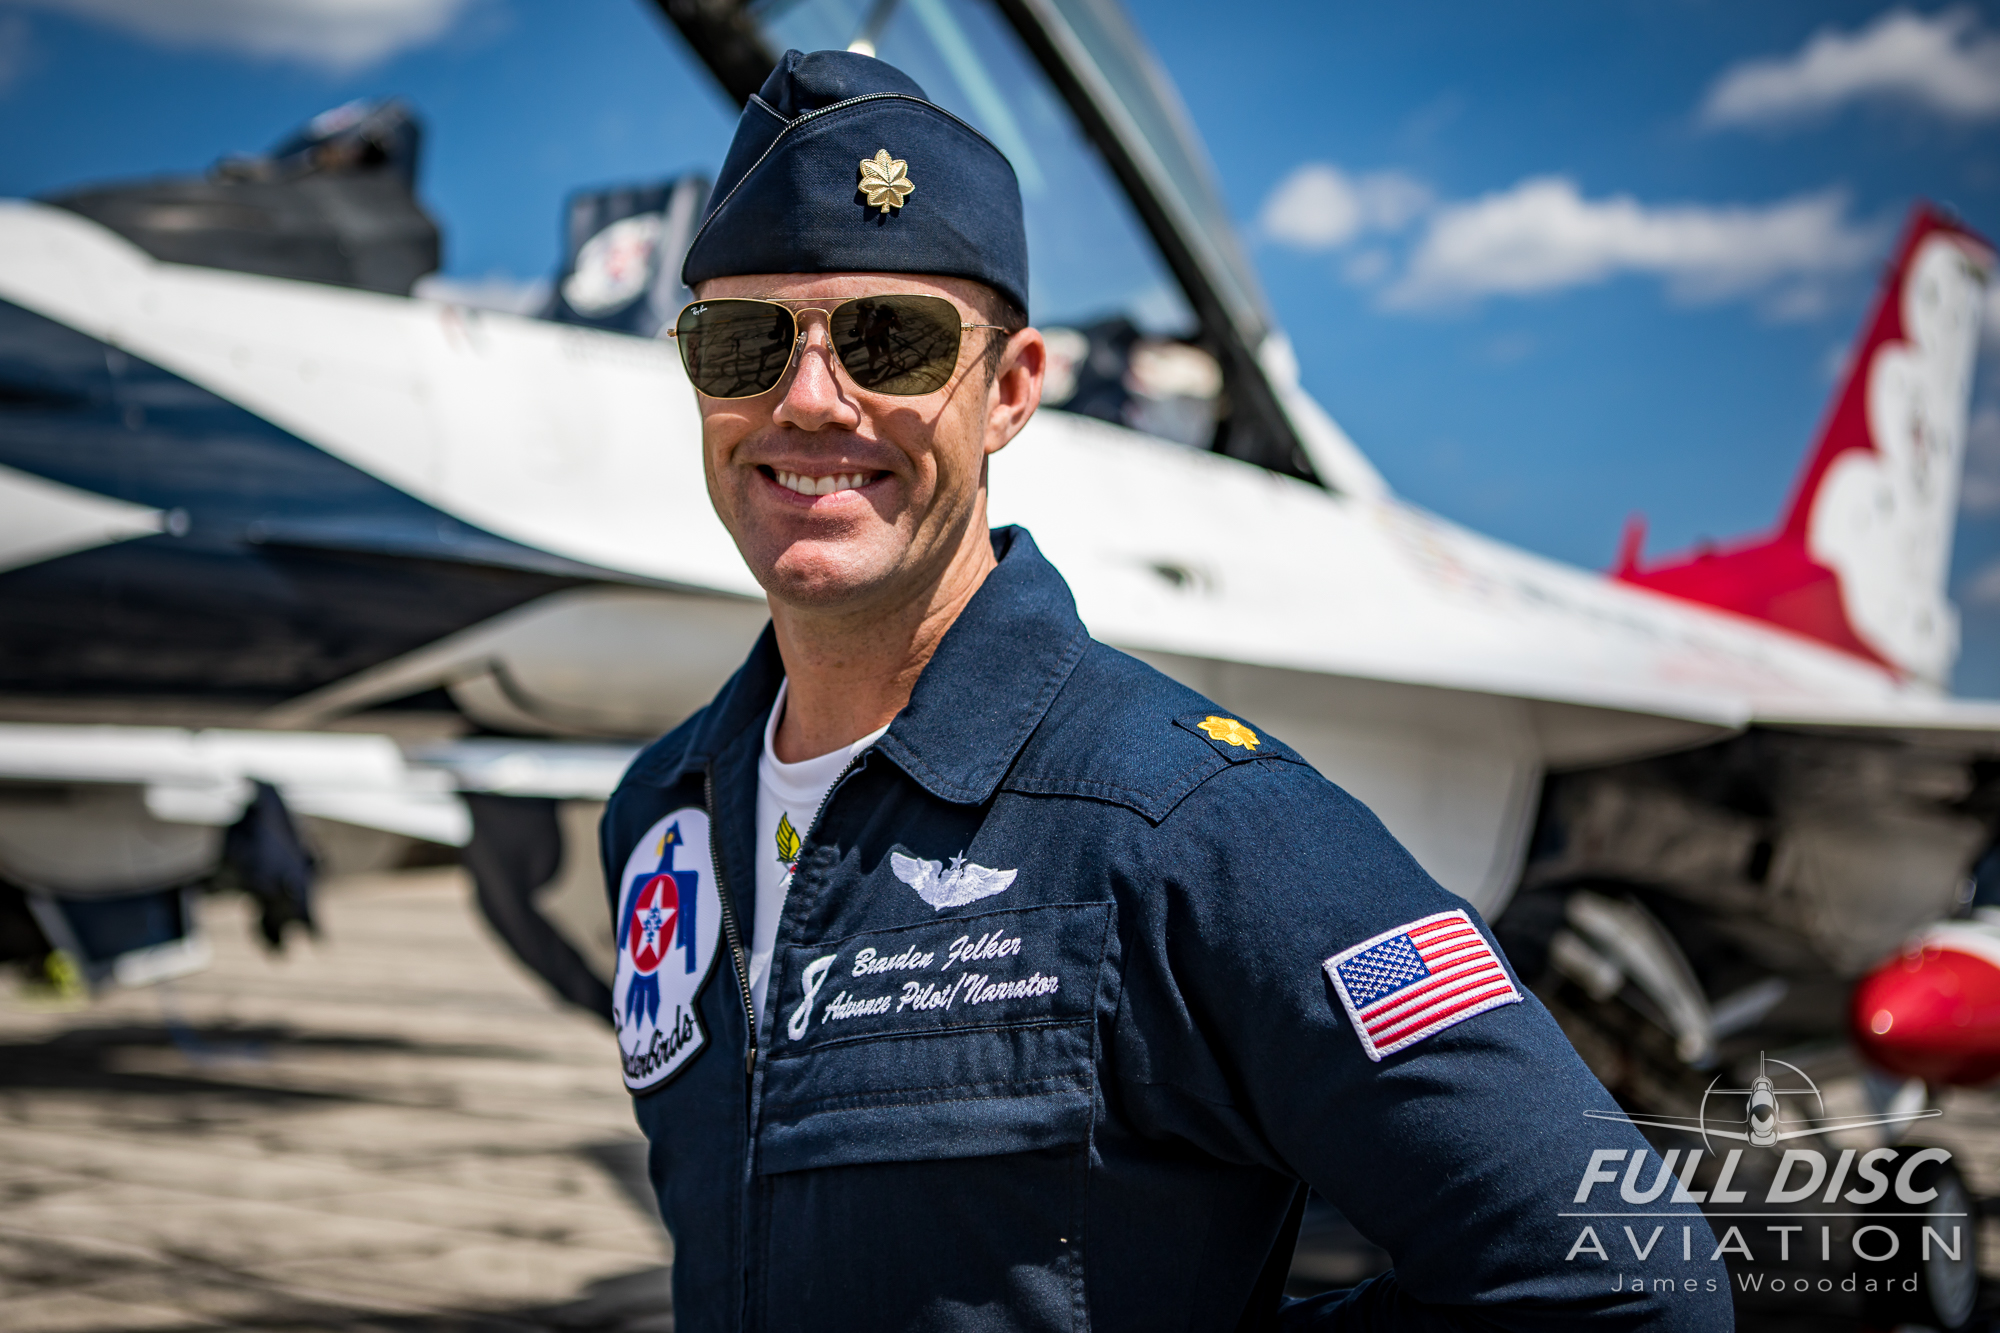 FullDiscAviation_JamesWoodard-August 23, 2018-37.jpg